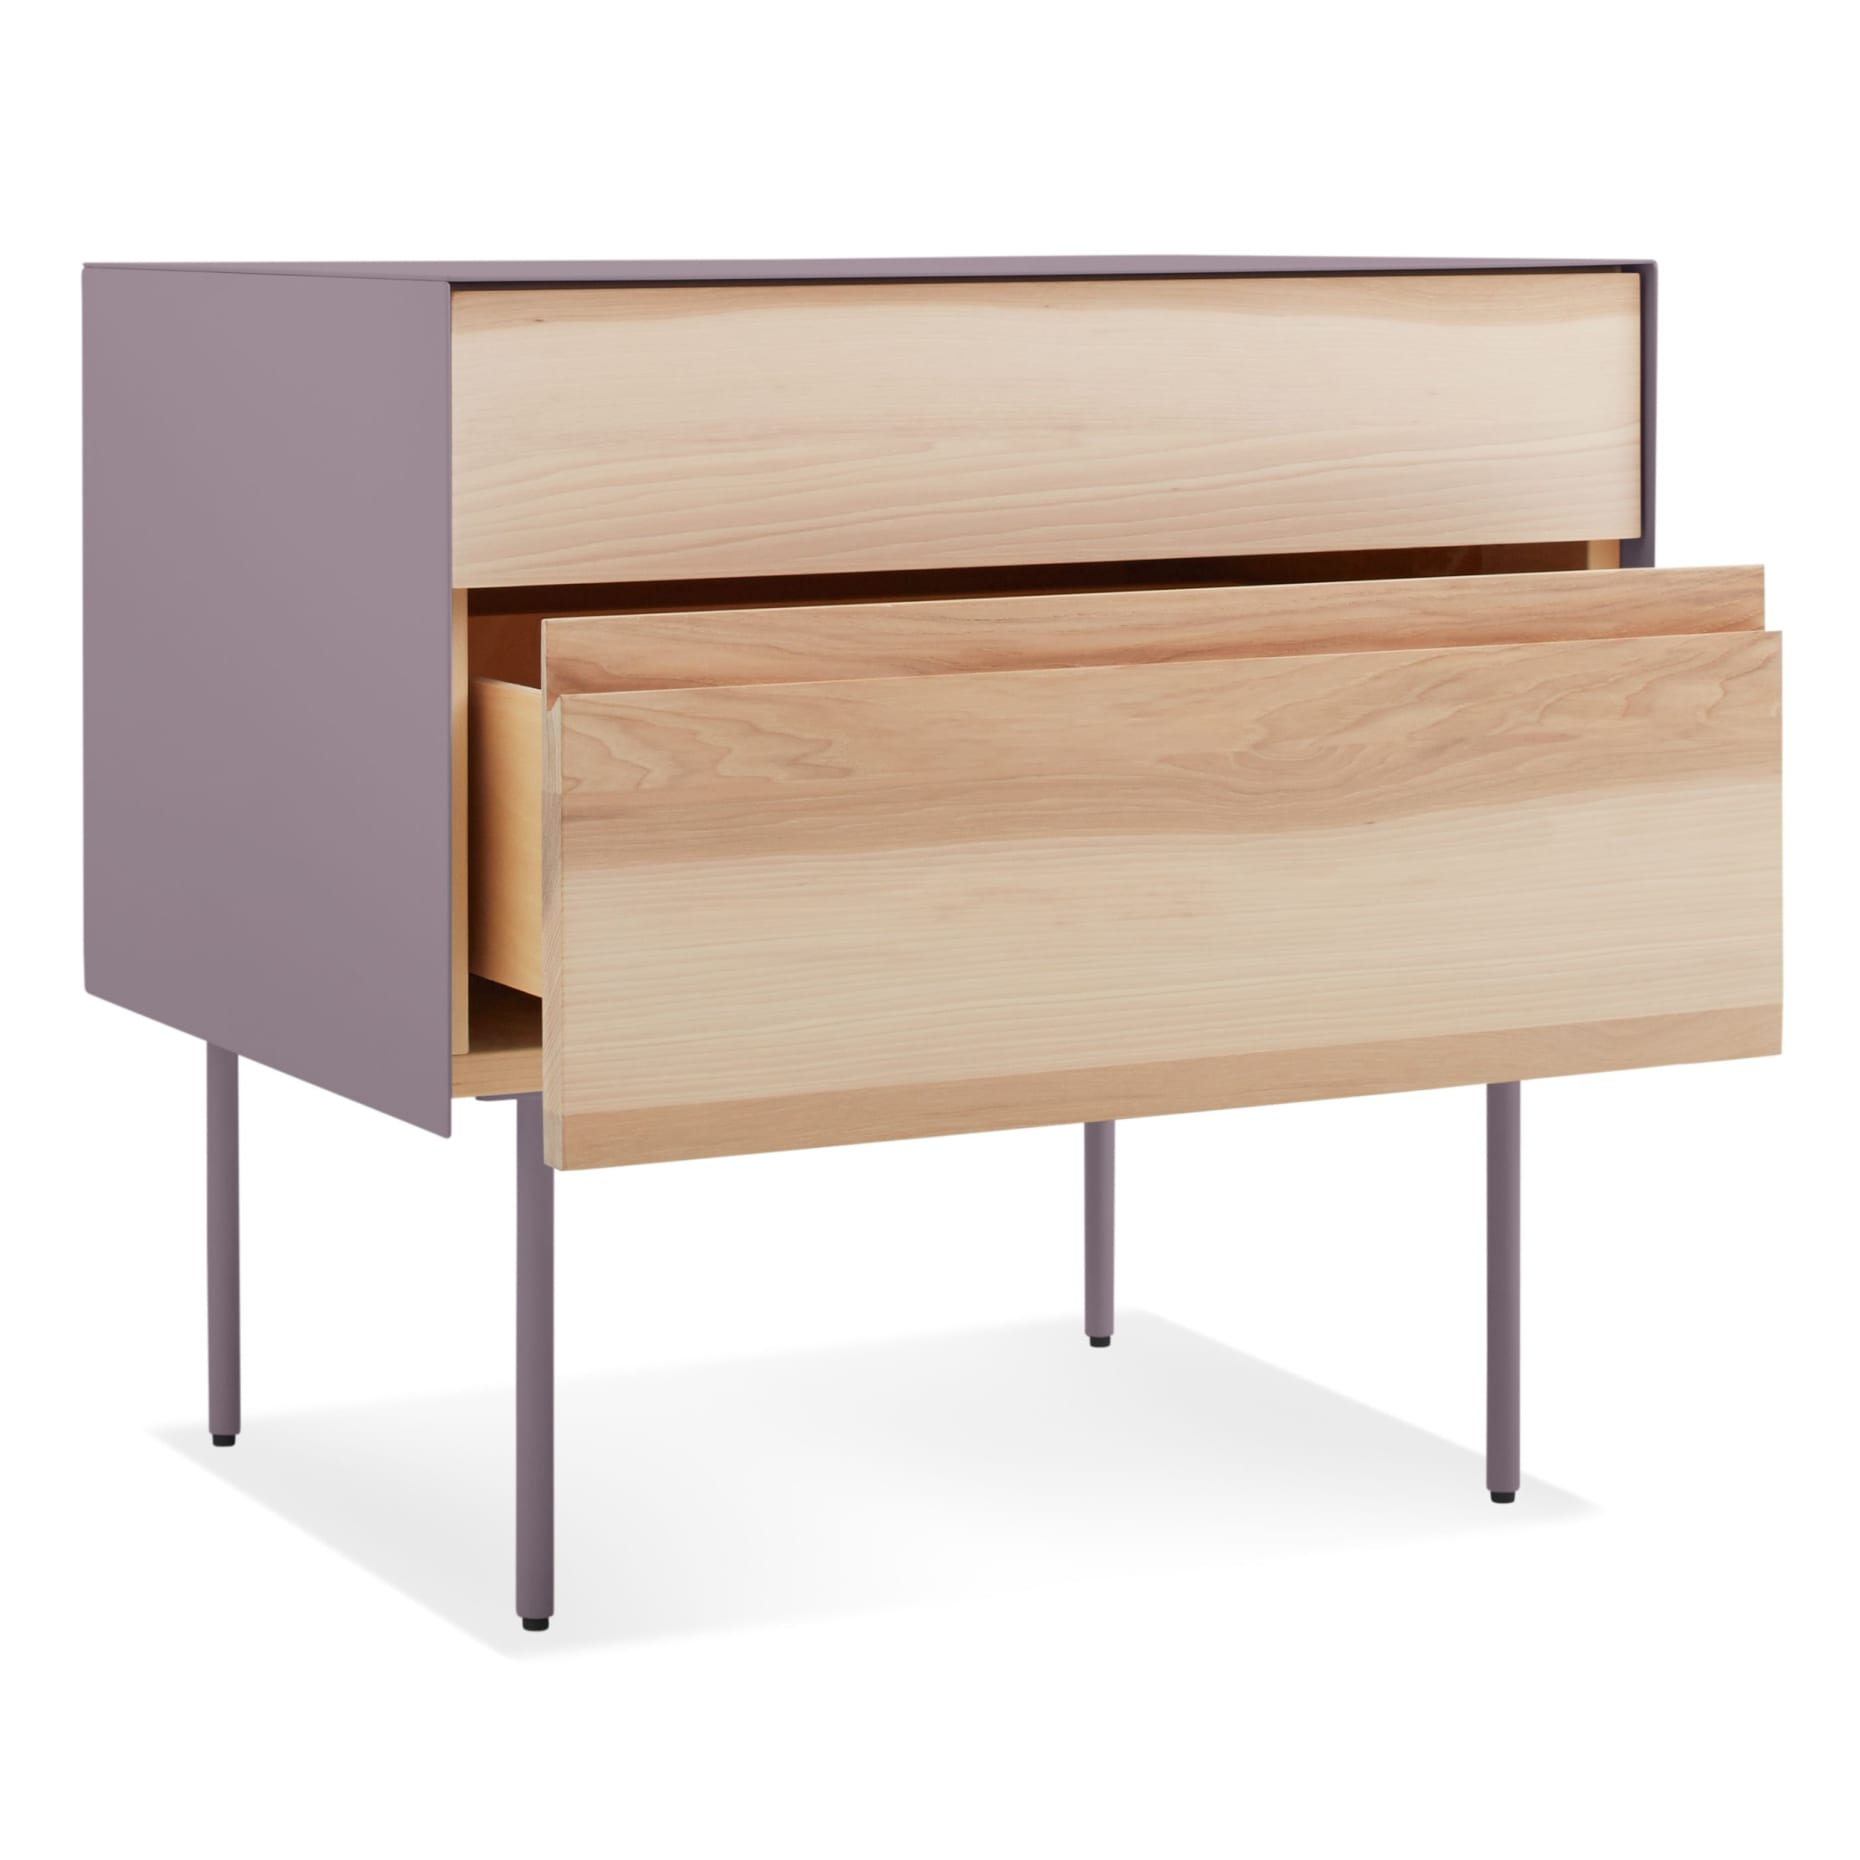 cd1 ntdstd oy 34open clad nightstand hickory oyster